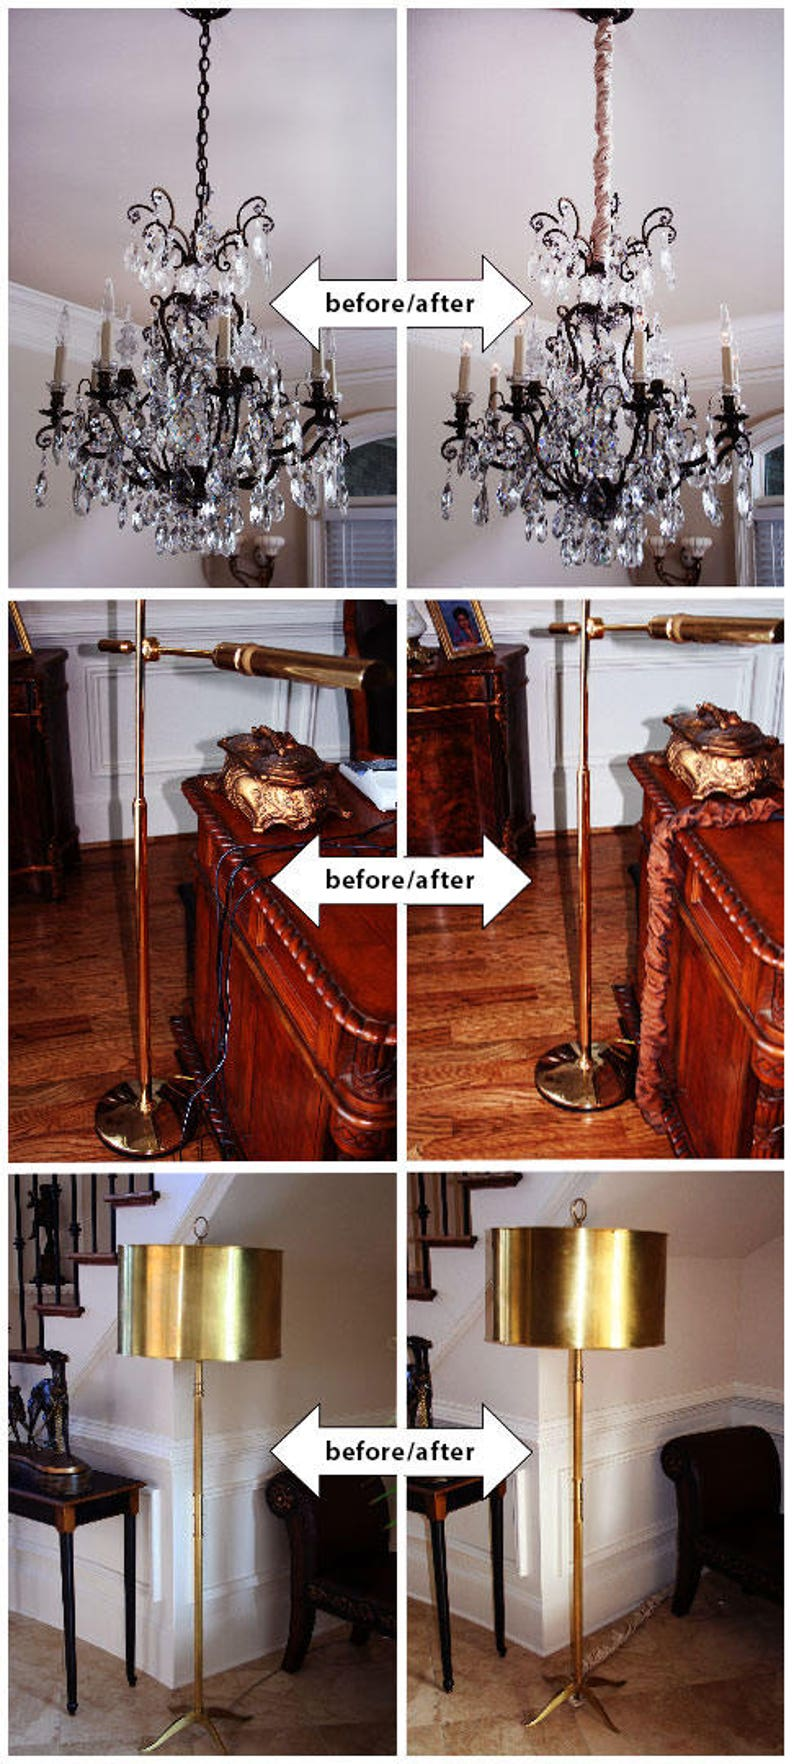 Silk-Type Fabric Touch Fastener Use for Chandelier Lighting Wires 4 feet Royal Designs CC-11-AGL Antique Gold Cord /& Chain Cover